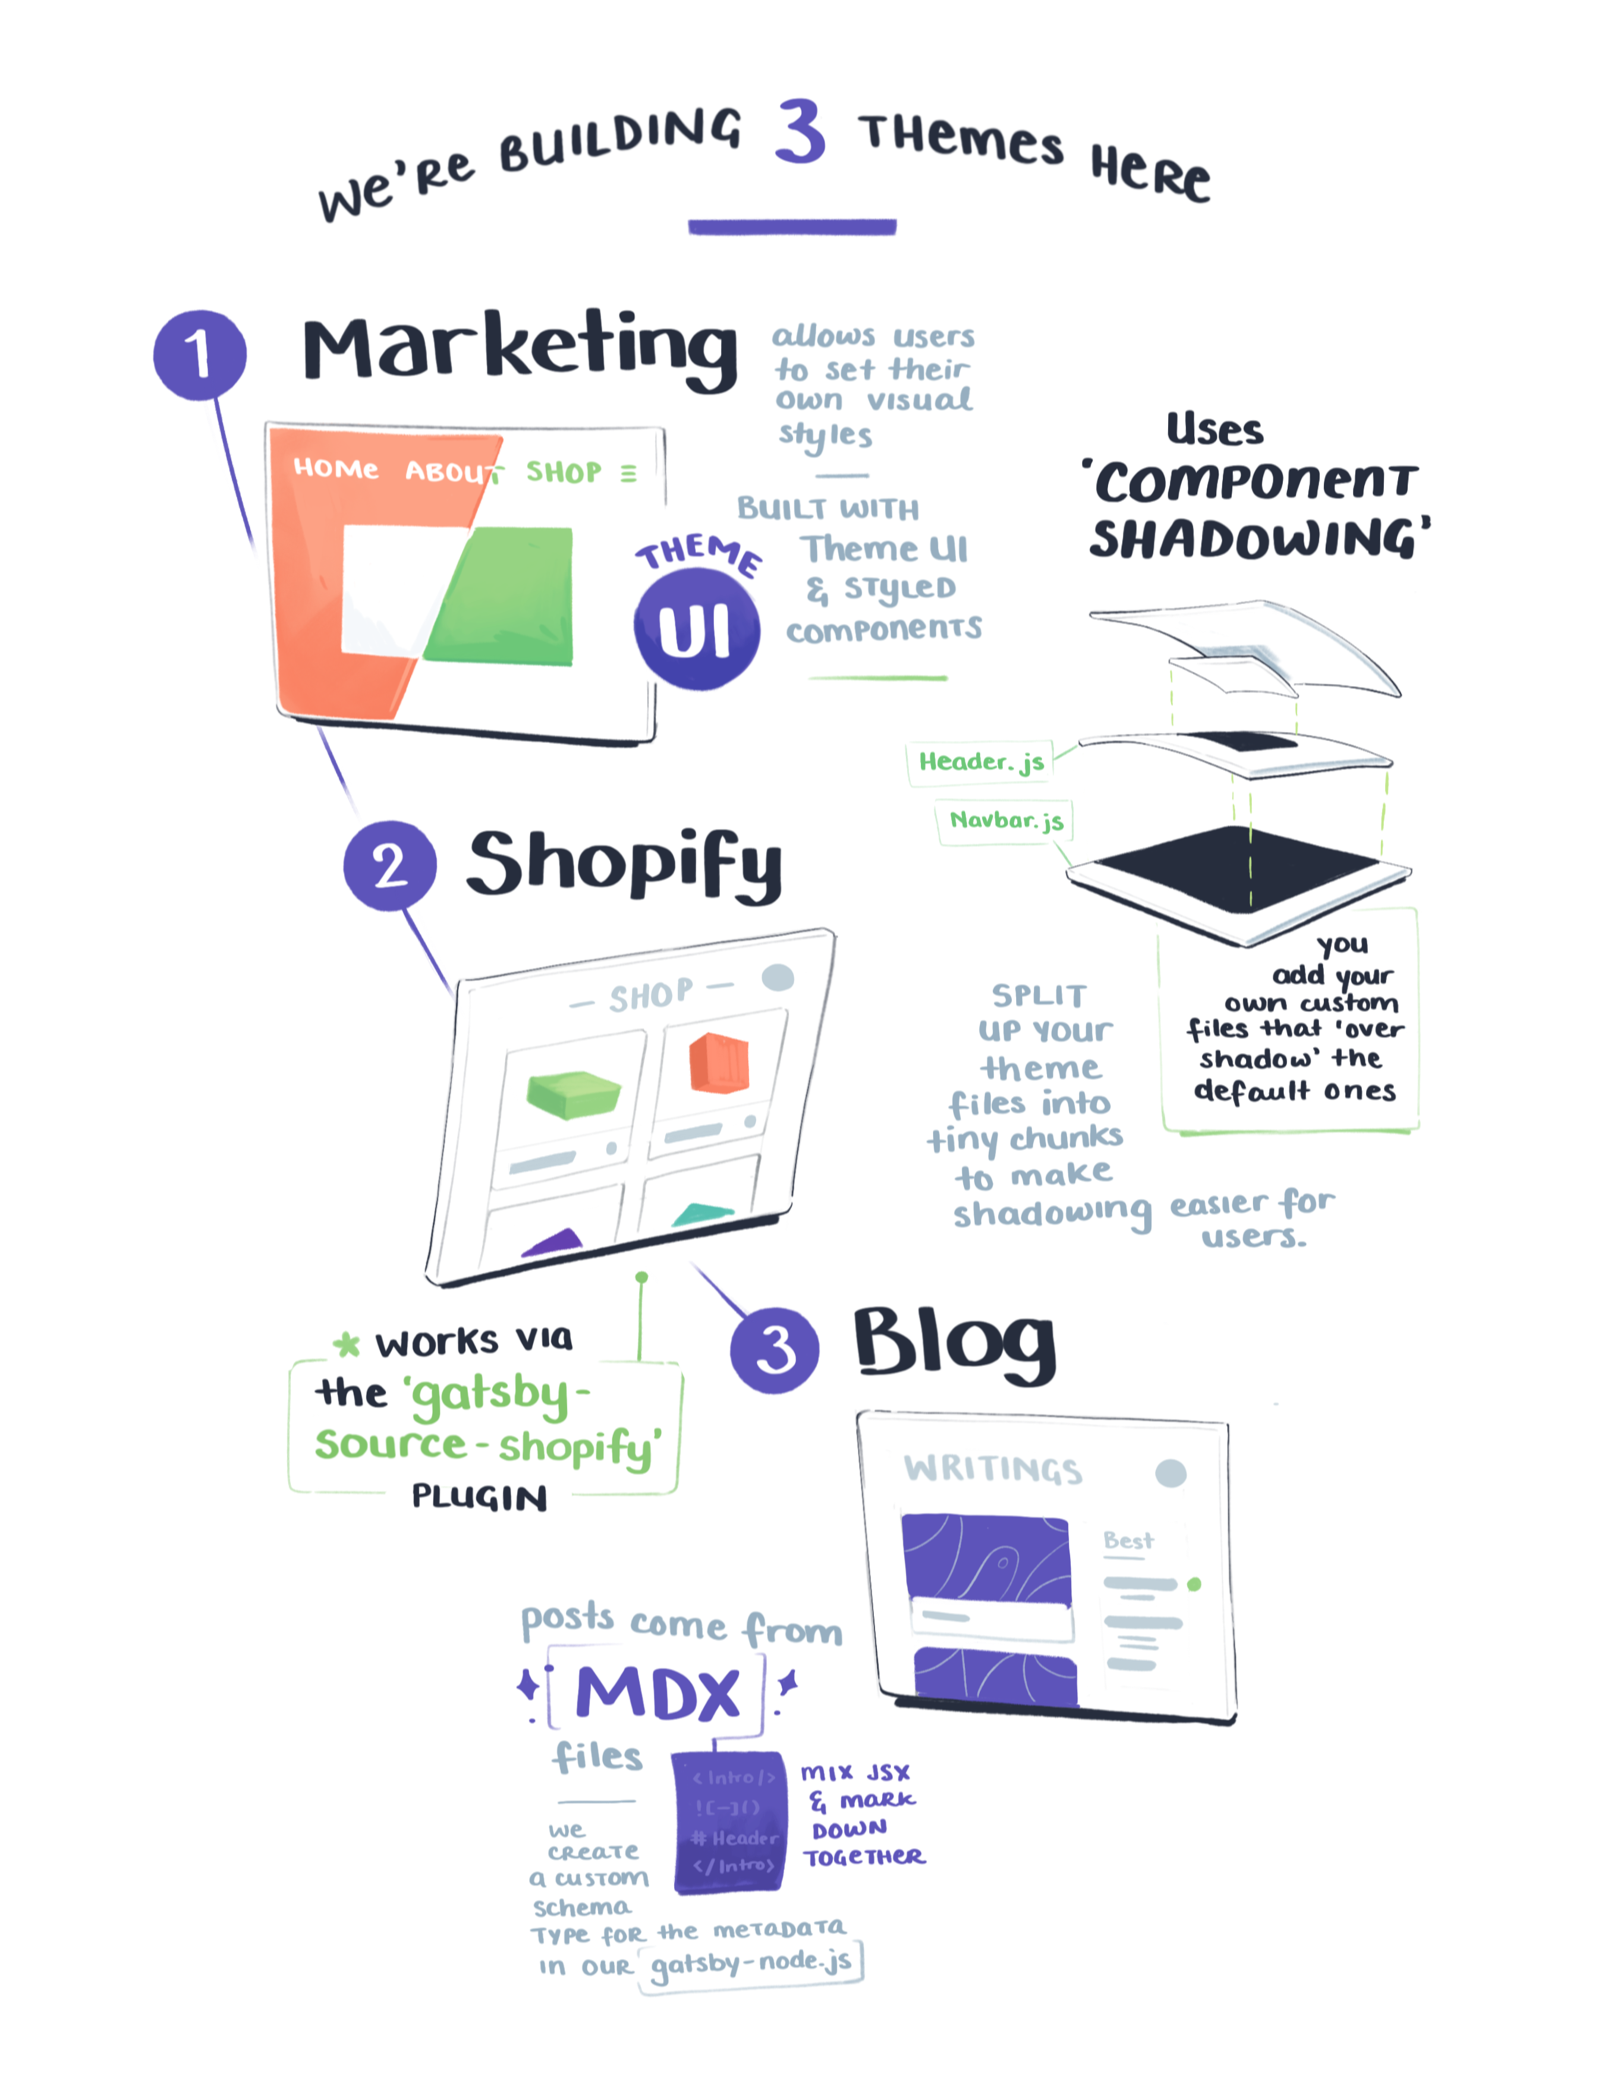 We're building 3 themes here - marketing, shopify, and blog